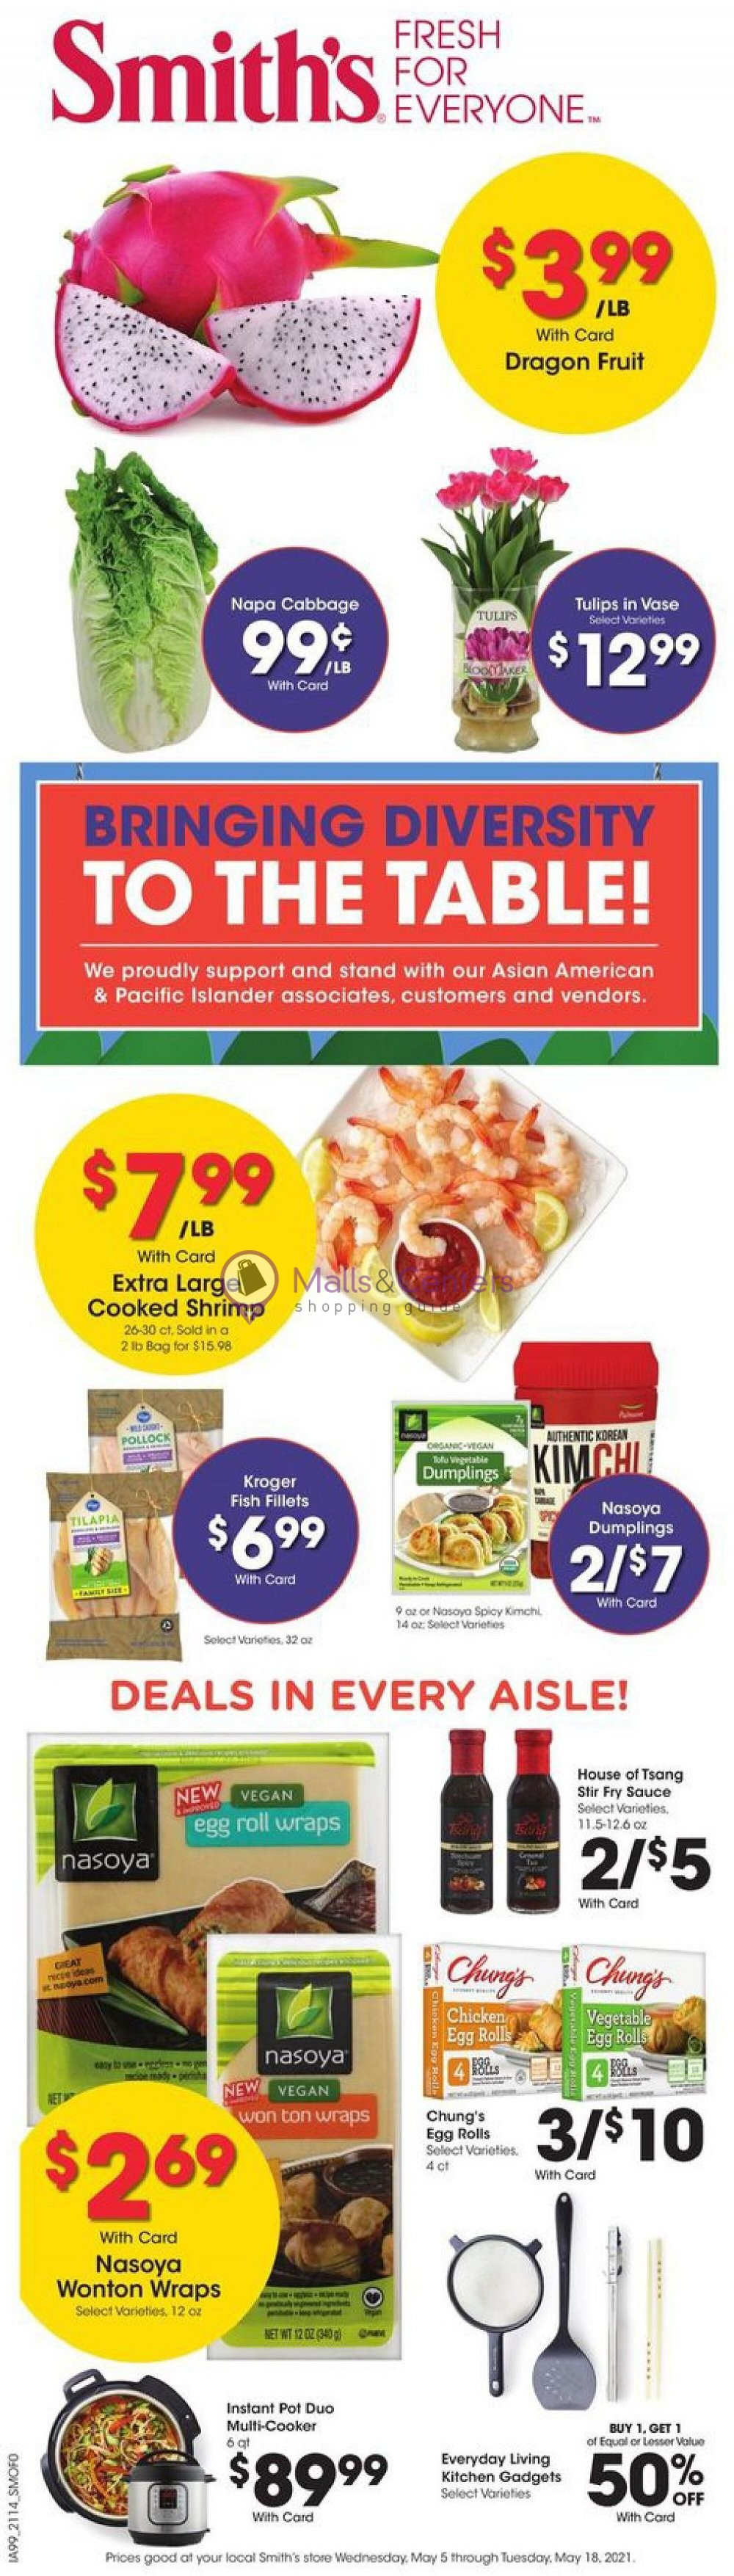 weekly ads Smith's - page 1 - mallscenters.com